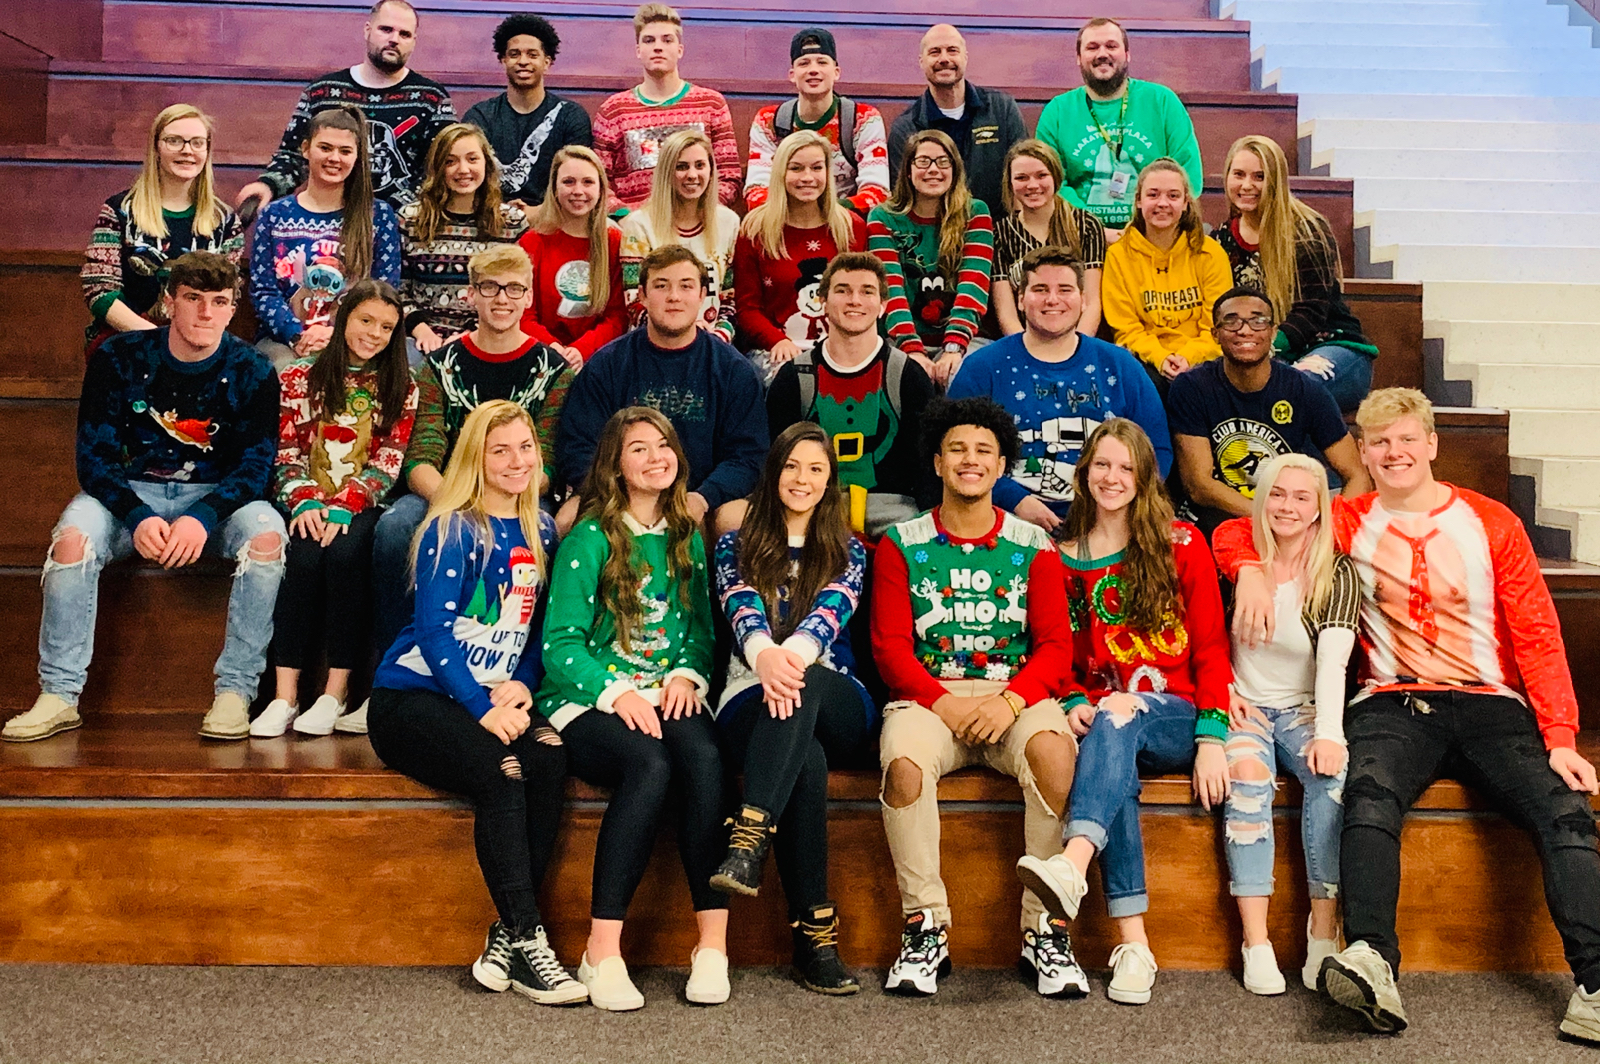 """Happy Holidays from this """"Ugly Sweater"""" wearing group of #NhsCaptains.."""